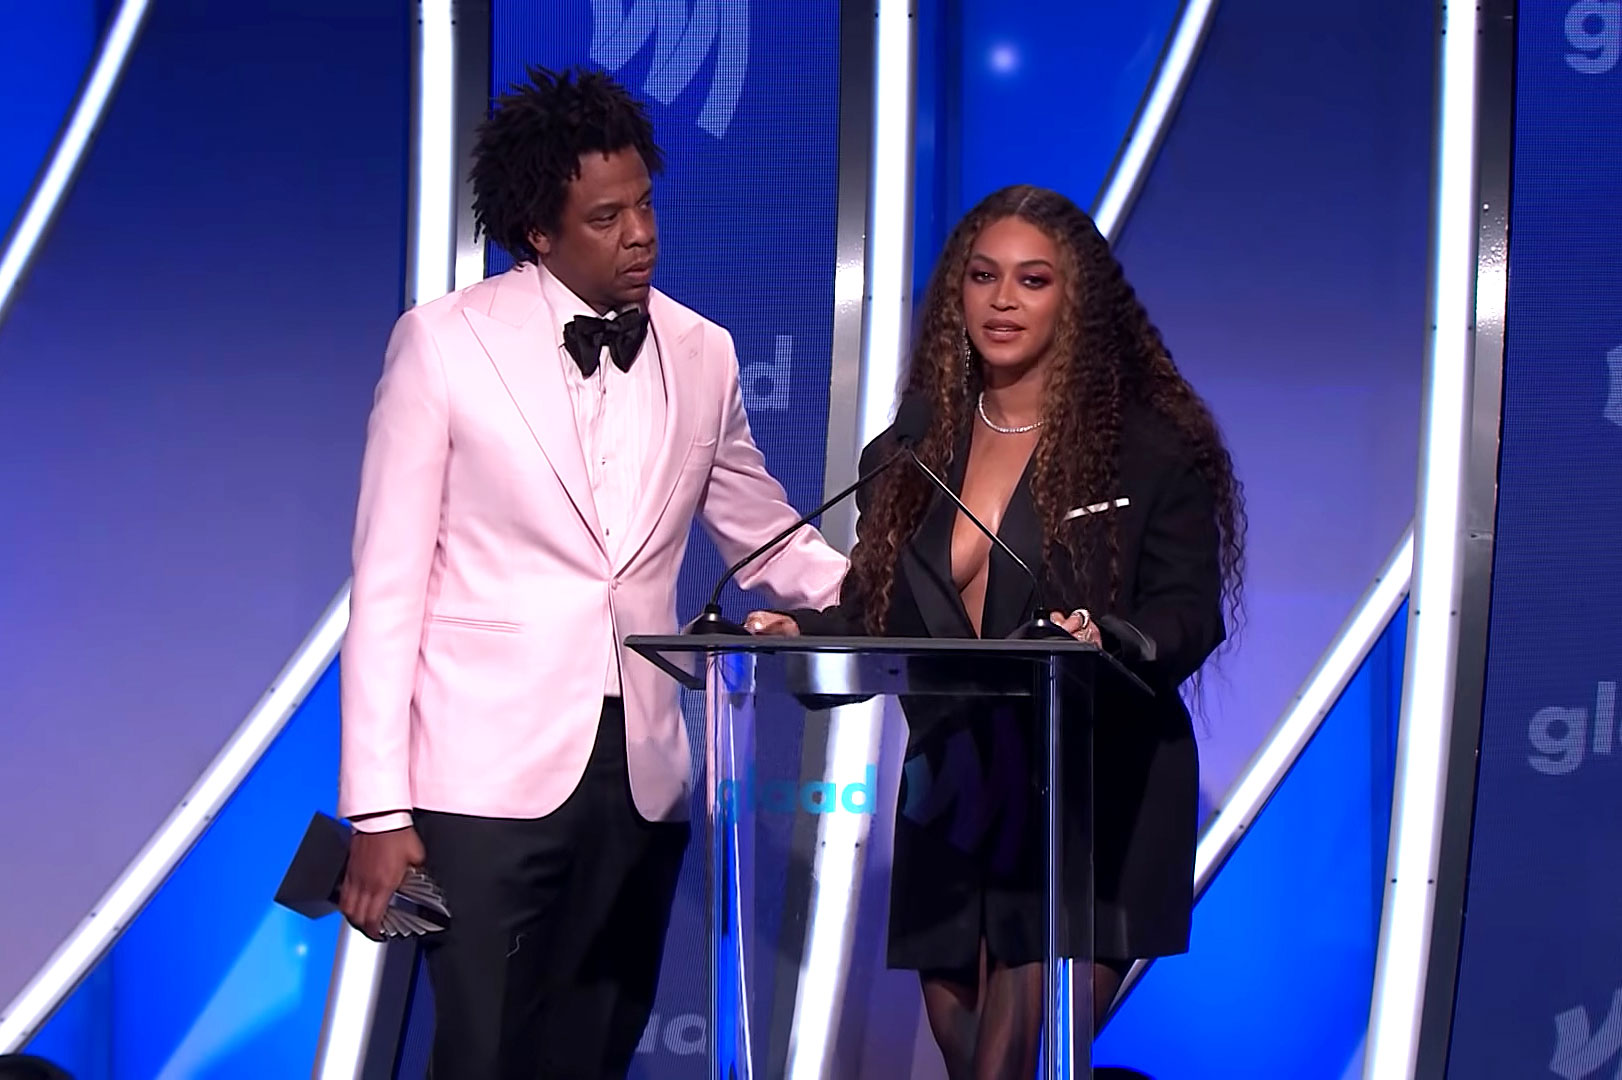 """jay-z-beyonce-2019-gallery-slide - The Carters attended the 2019 GLAAD Media Awards in L.A. to accept the Vanguard Award. During their speech, Beyoncé delivered a powerful message in support of the LGBT community before turning to Jay-Z and paraphrasing her viral """"Formation"""" lyric: """"Who you make love to — and take that ass to Red Lobster — is your human right."""""""